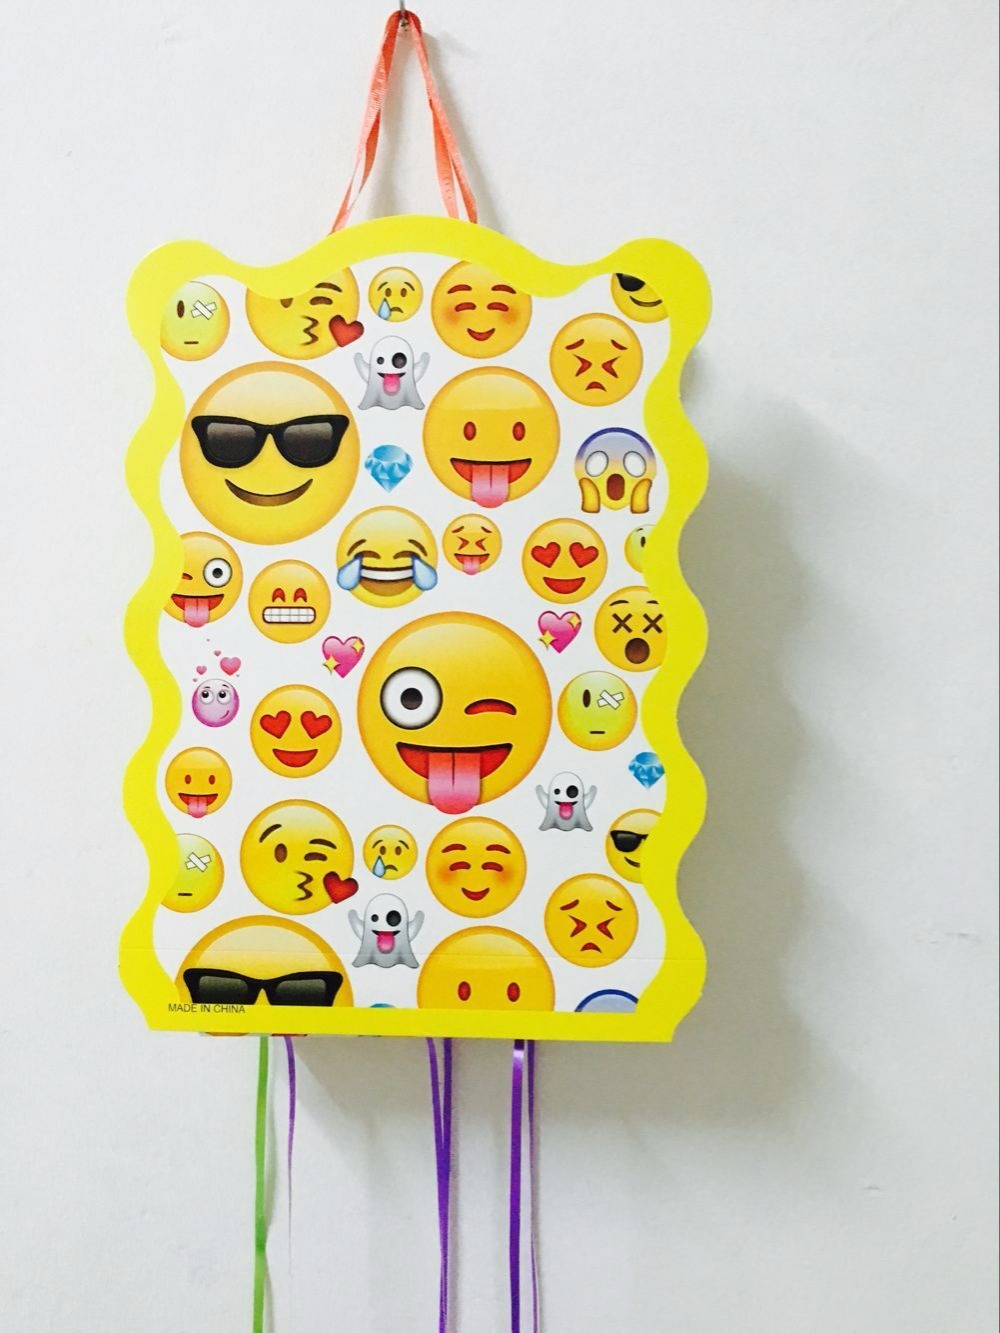 1SET LOT EMOJI PINATA KIDS BIRTHDAY PARTY FAVORS FUNNY GAME PLAYING HAPPY SUPPLIES